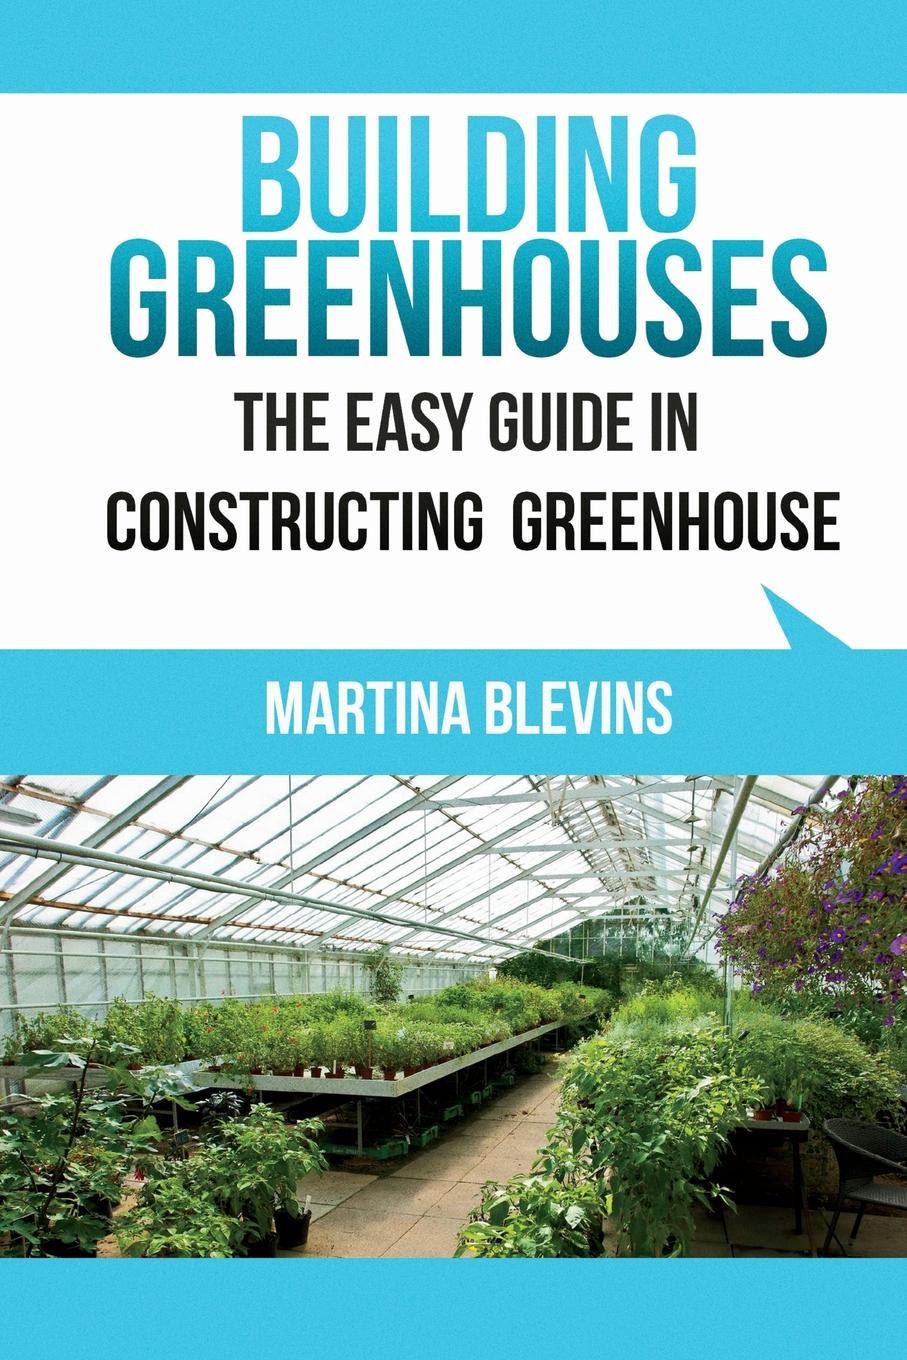 Martina Blevins Building Greenhouses. The Easy Guide for Constructing Your Greenhouse: Helpful Tips for Building Your Own Greenhouse 72 led ufo growing lamp full spectrum hydroponics system for vegetable garden flower plant grow light hydro indoor greenhouse